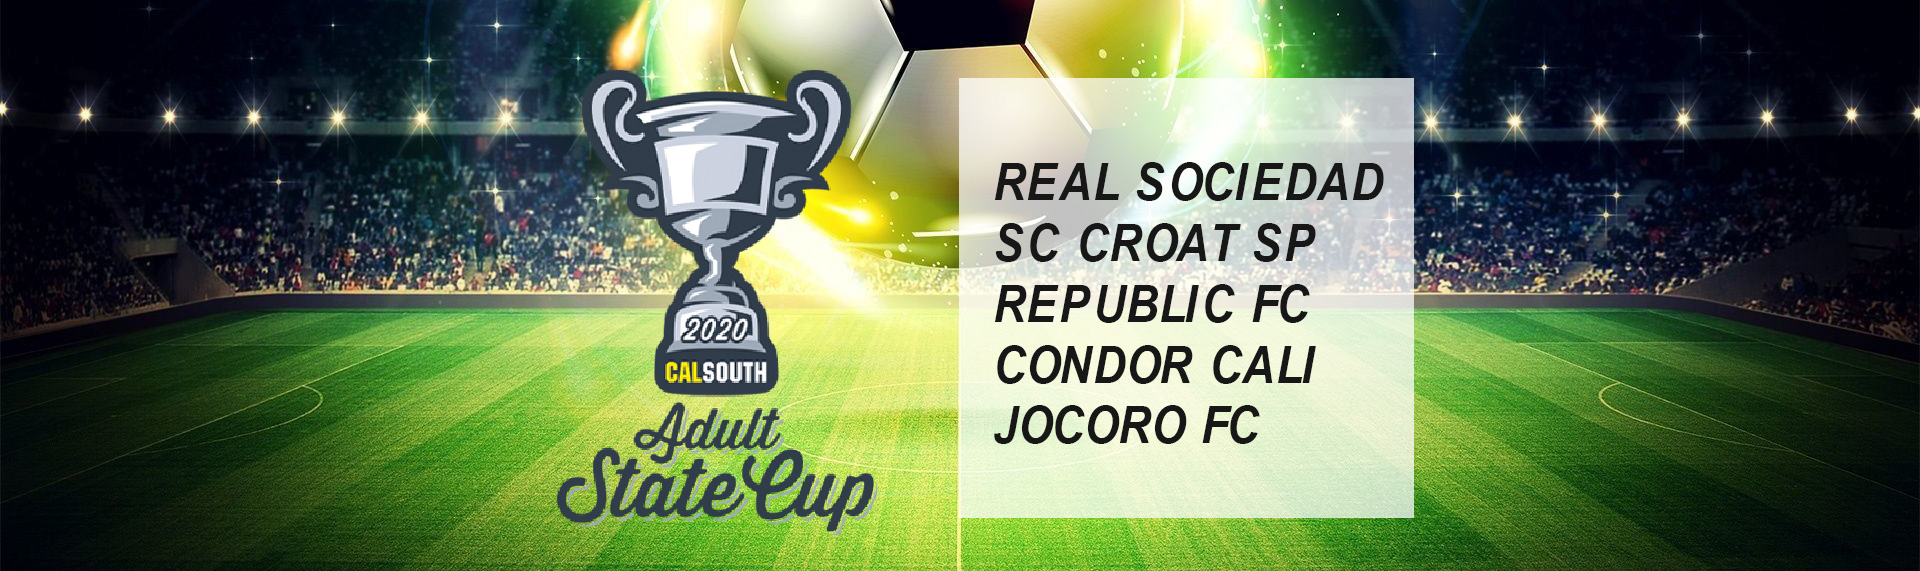 adult state cup 2020 schedule